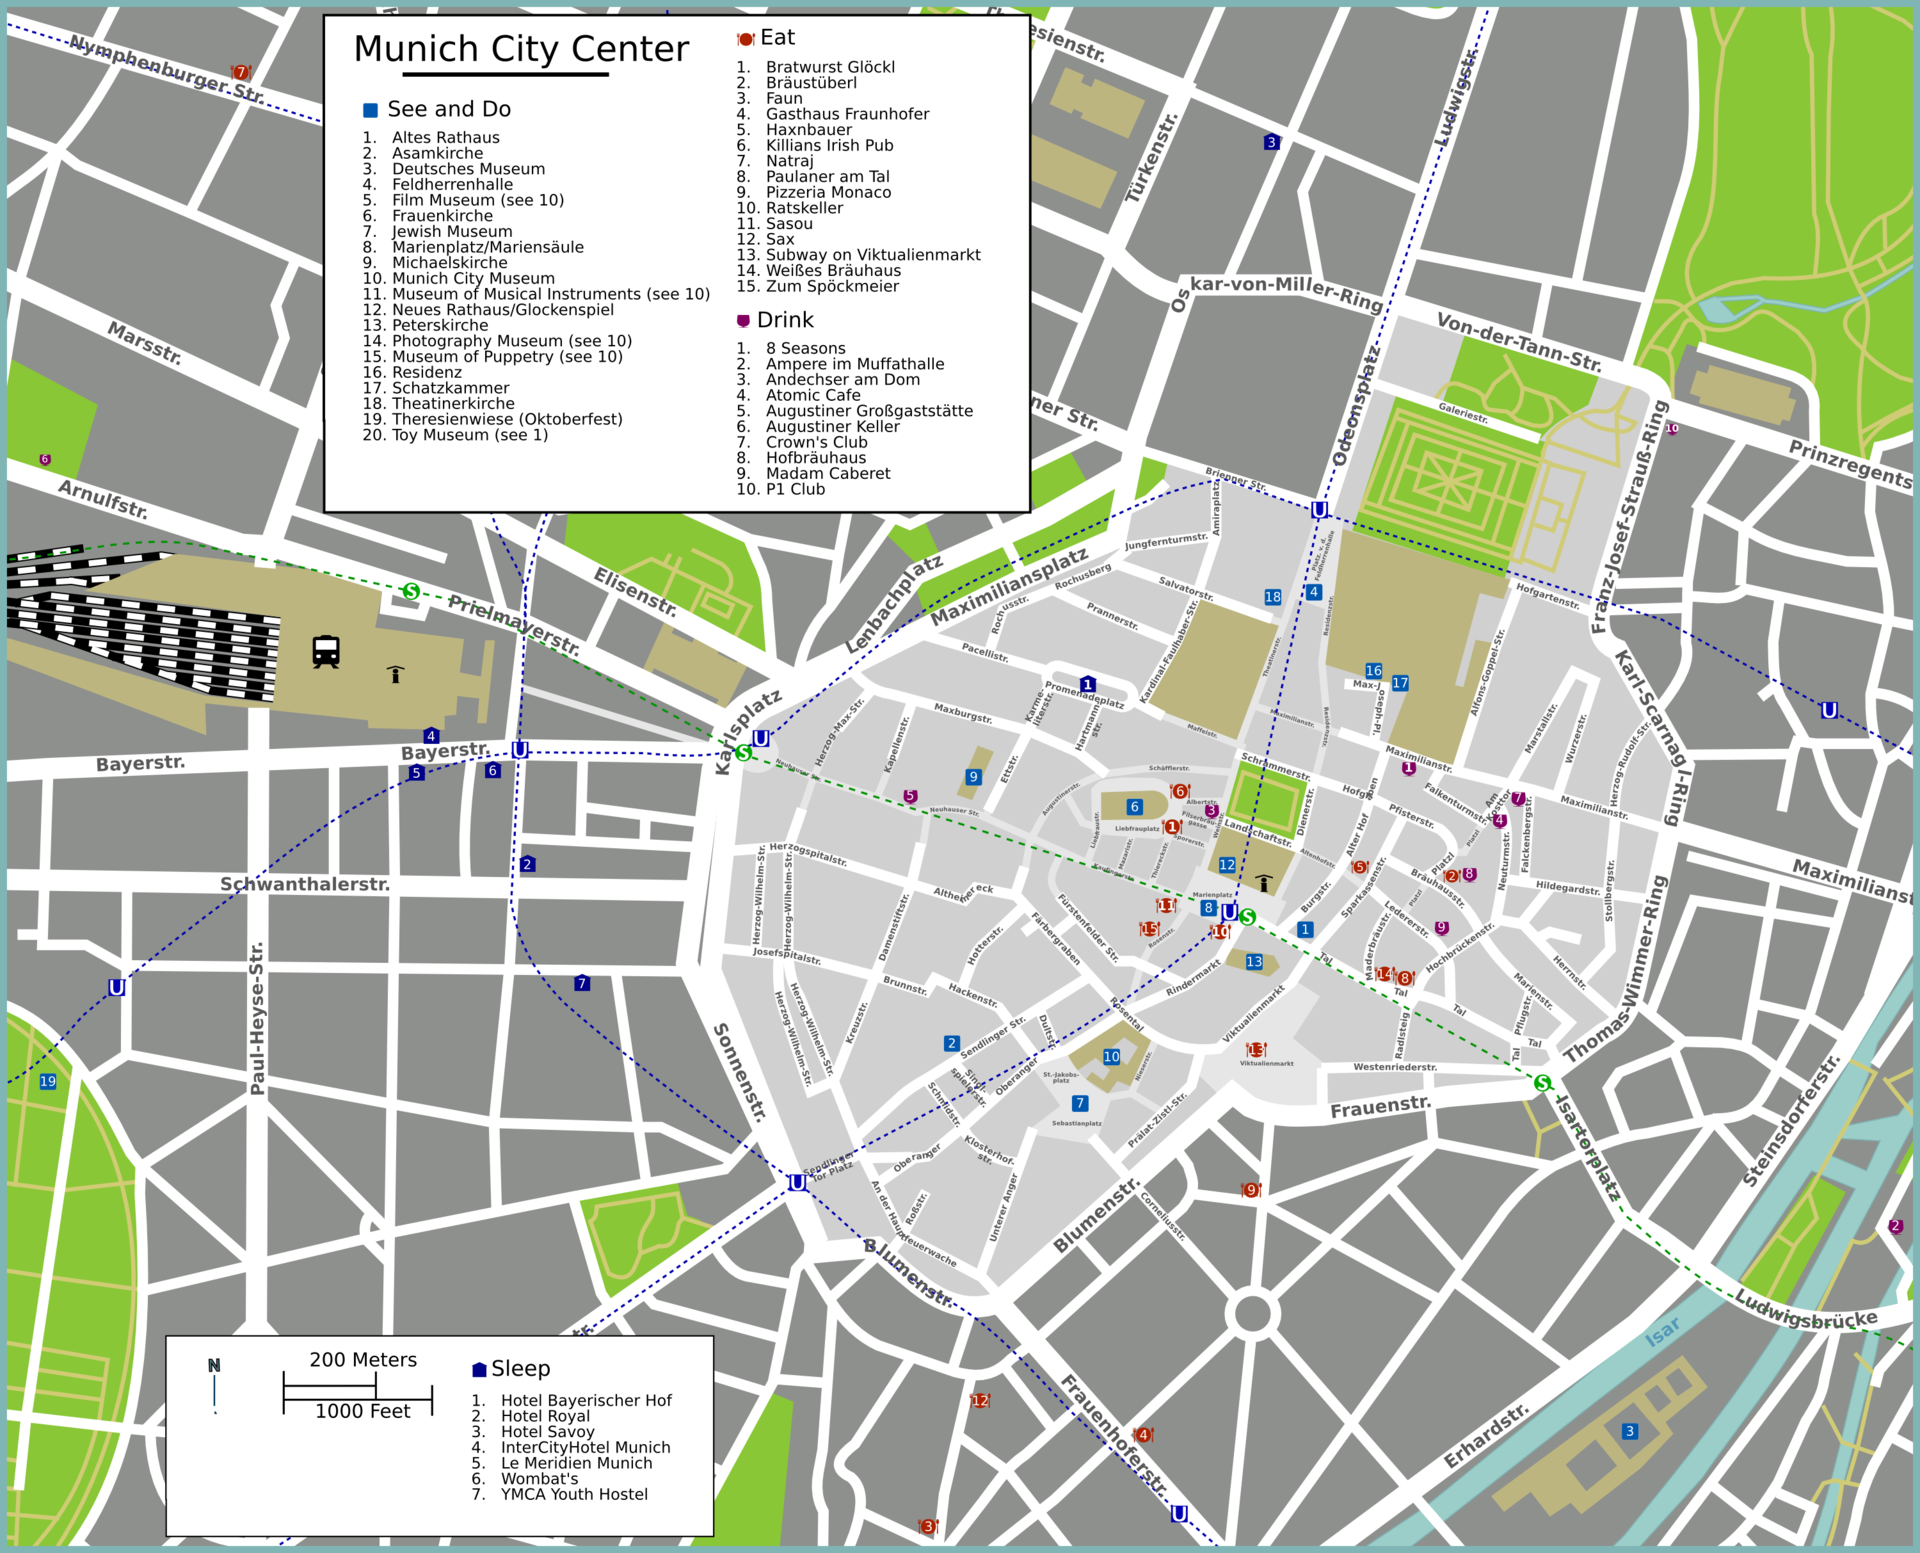 MunichAltstadt Travel guide at Wikivoyage – Munich Tourist Attractions Map